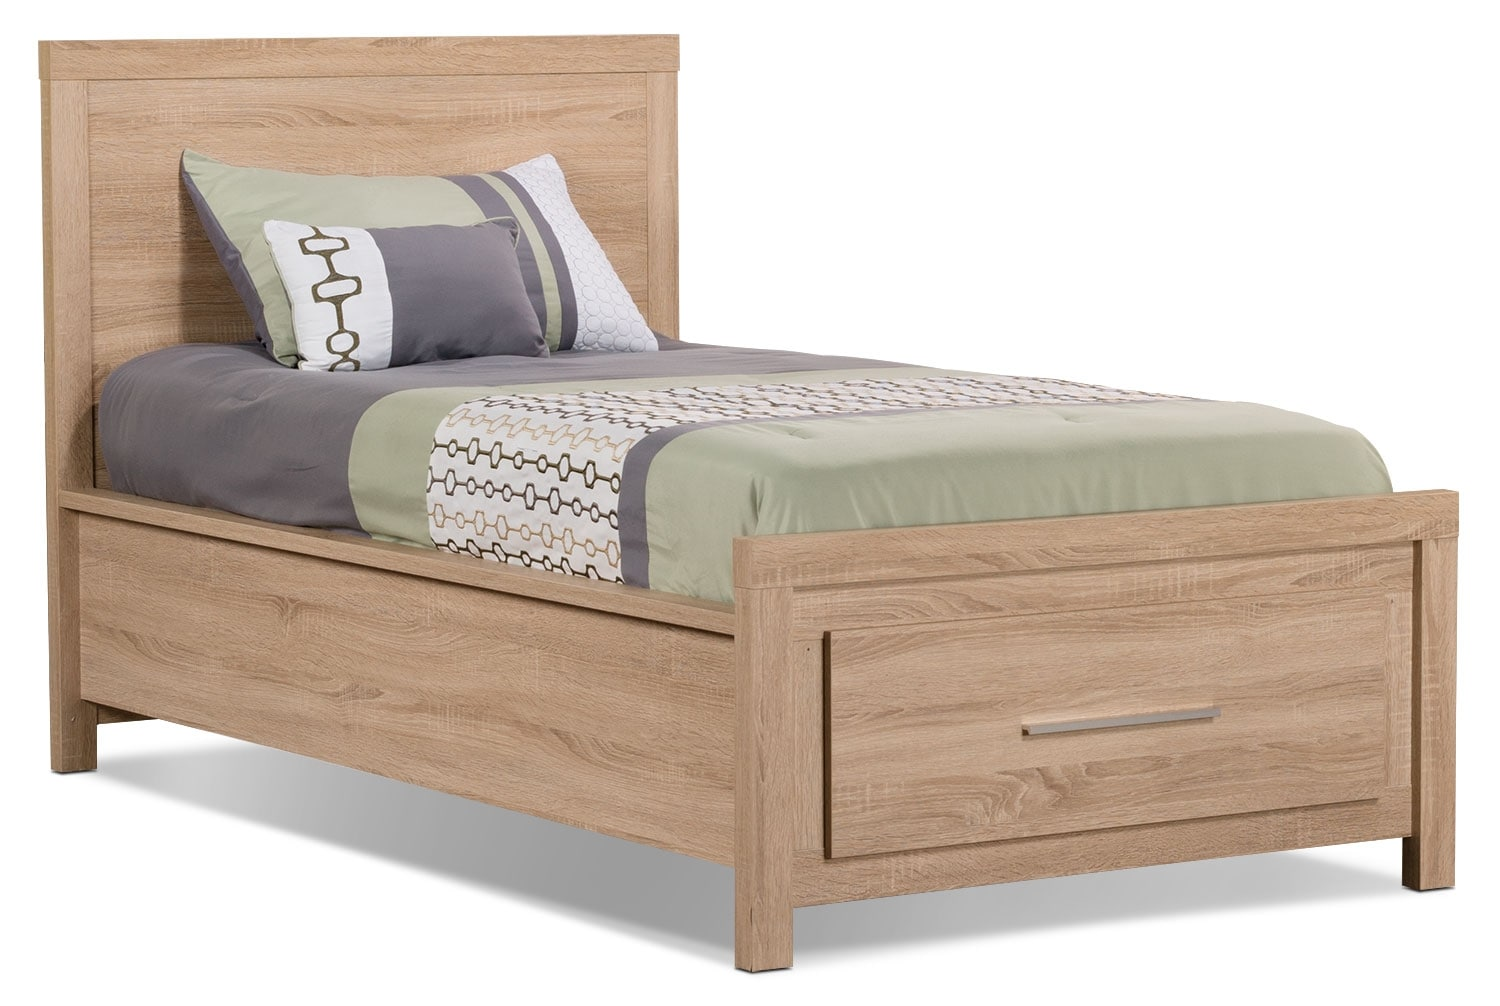 Sierra Twin Bed The Brick